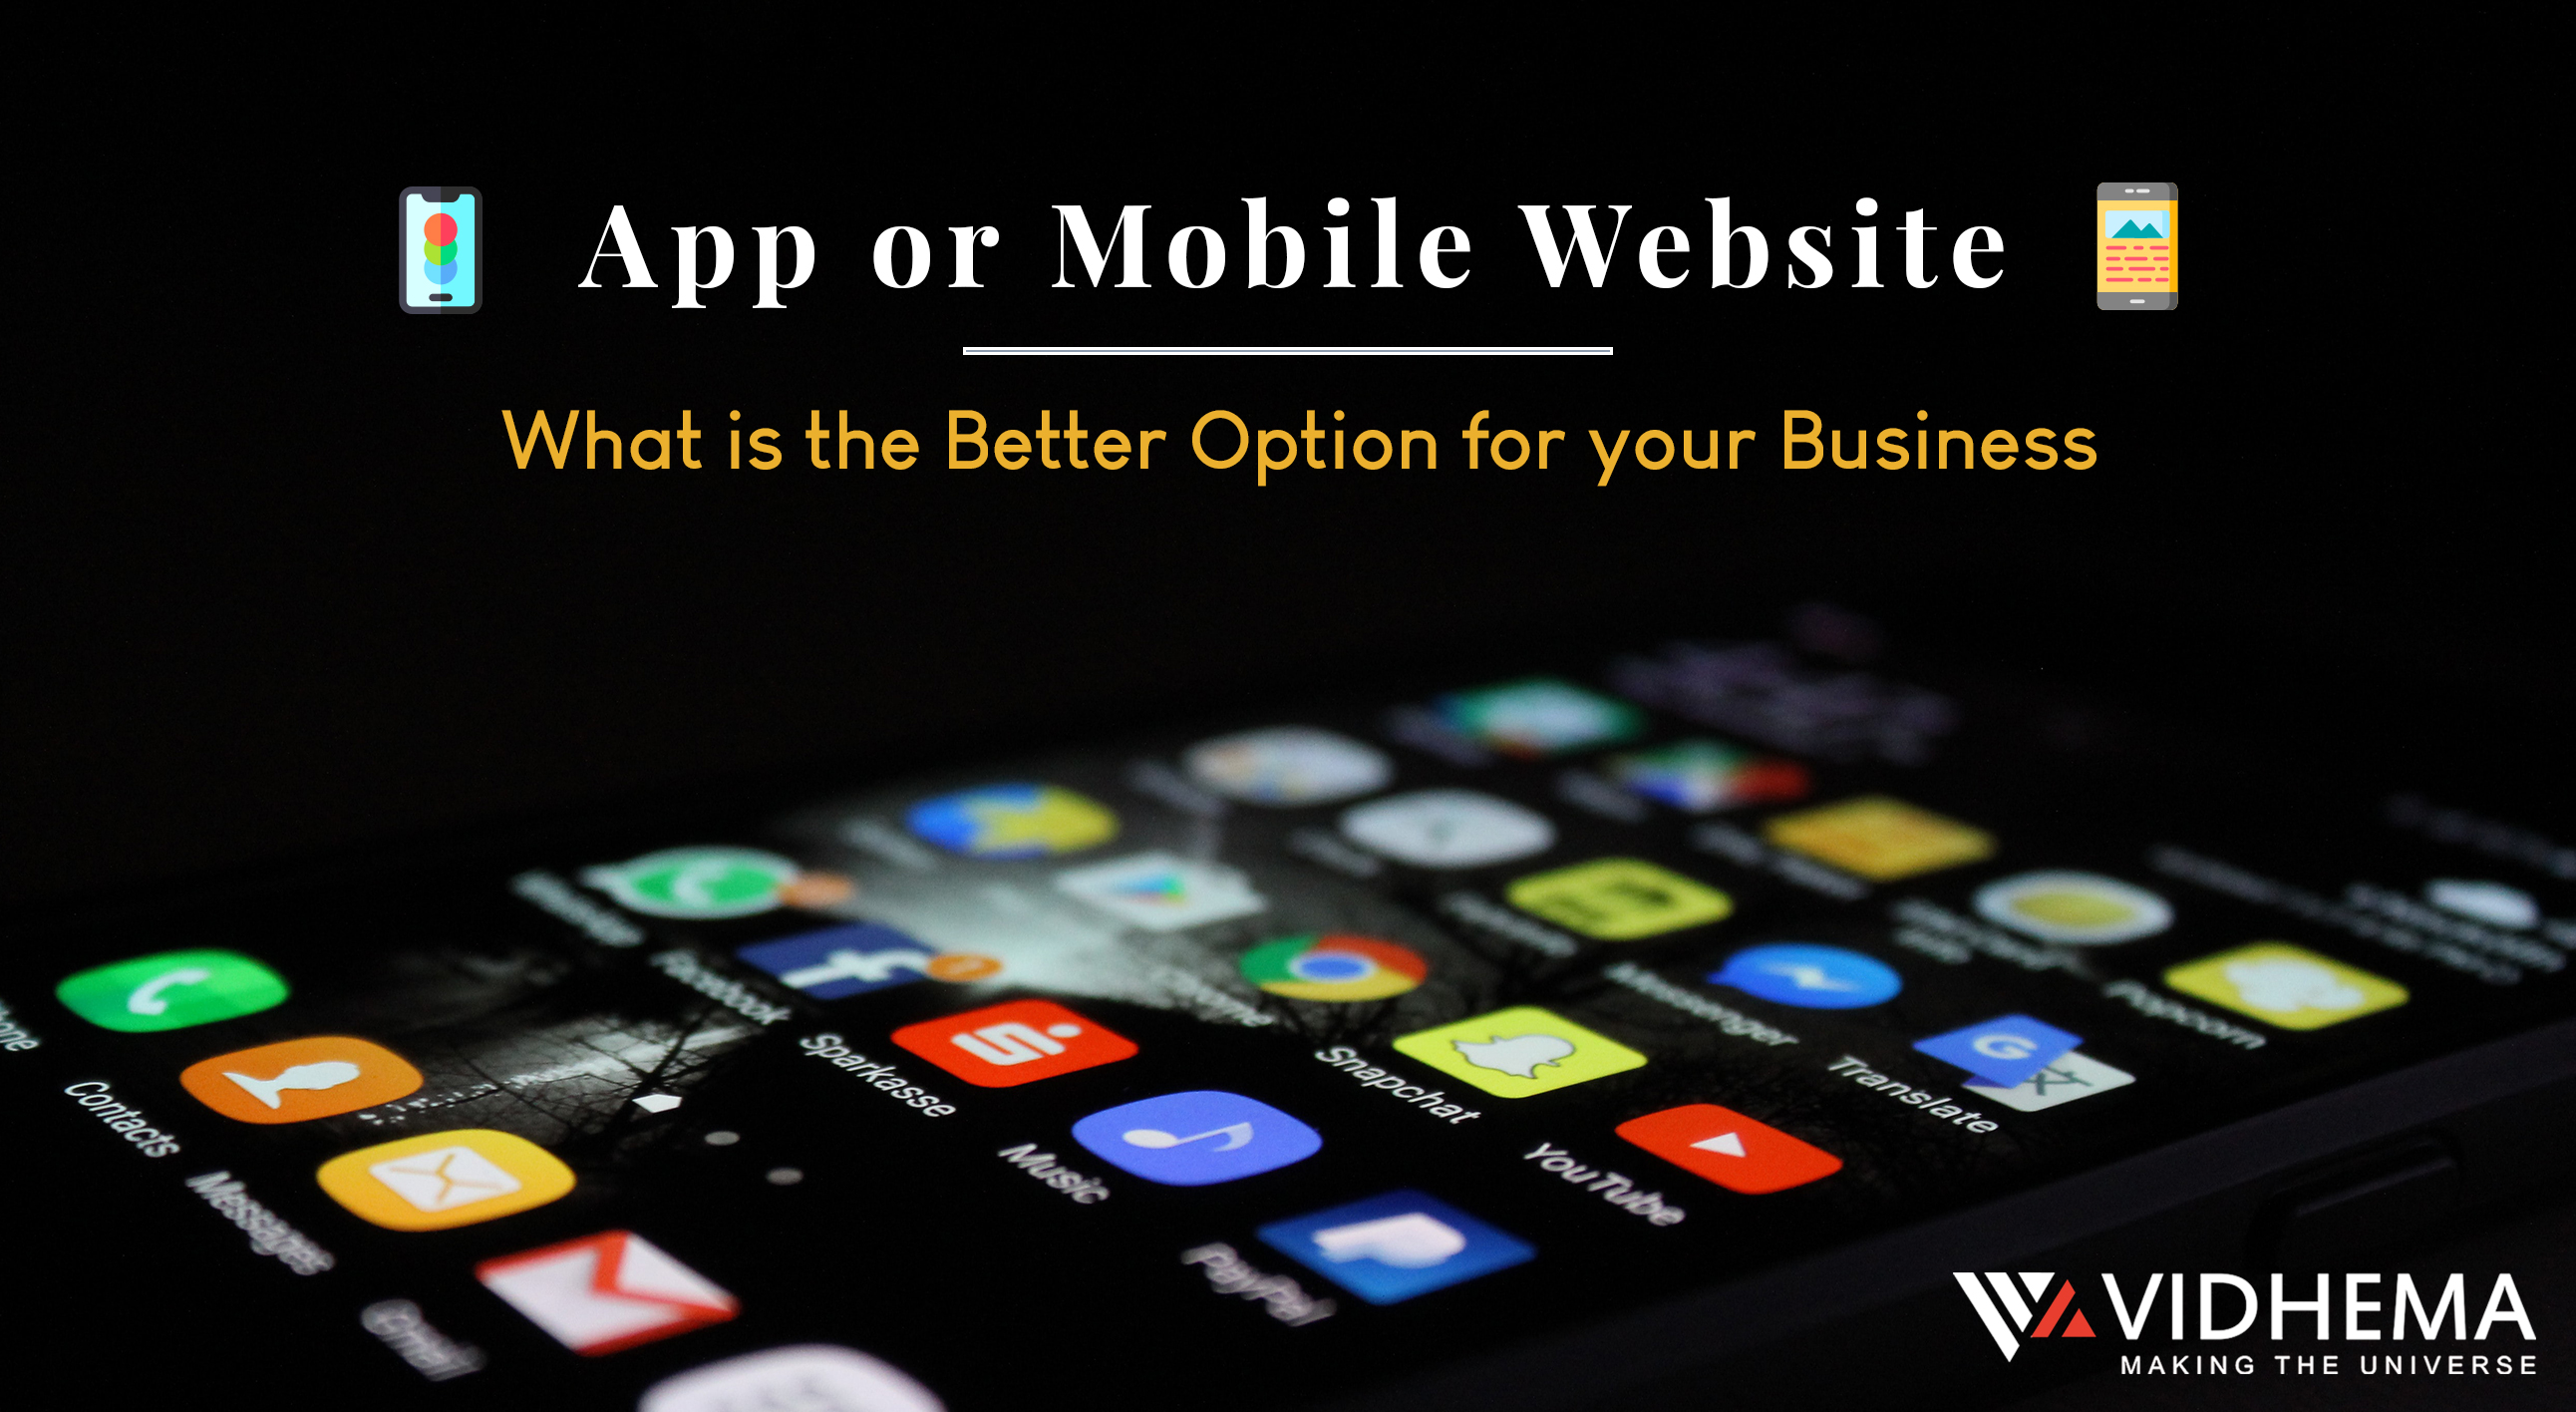 App or Mobile Website - What is the Better Option for your Business?